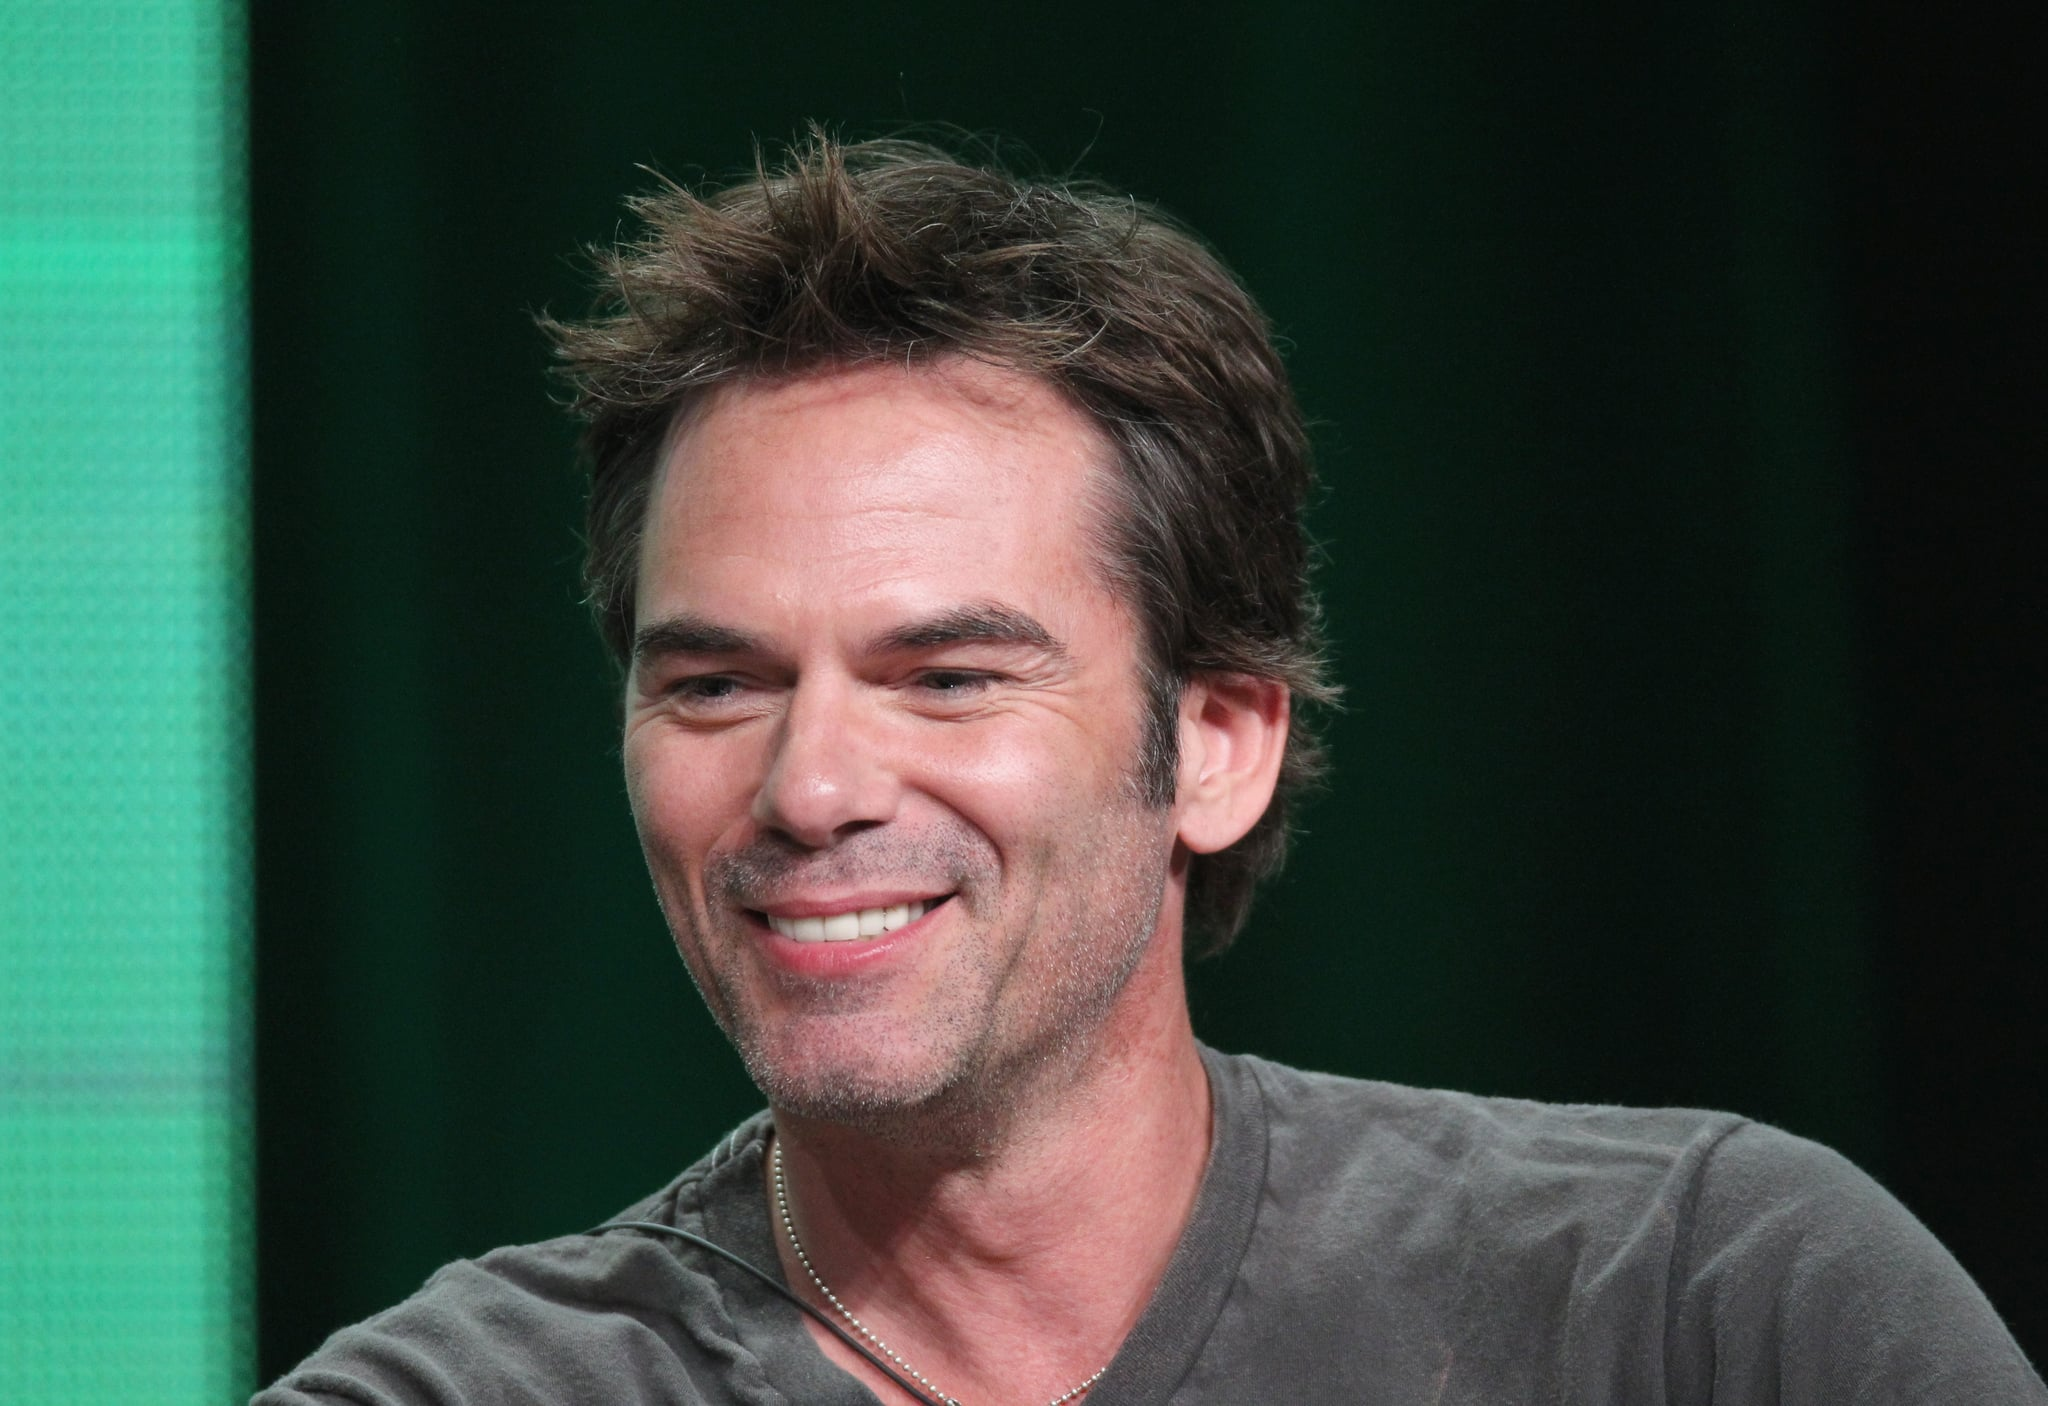 Billy Burke addressed the press from the stage.